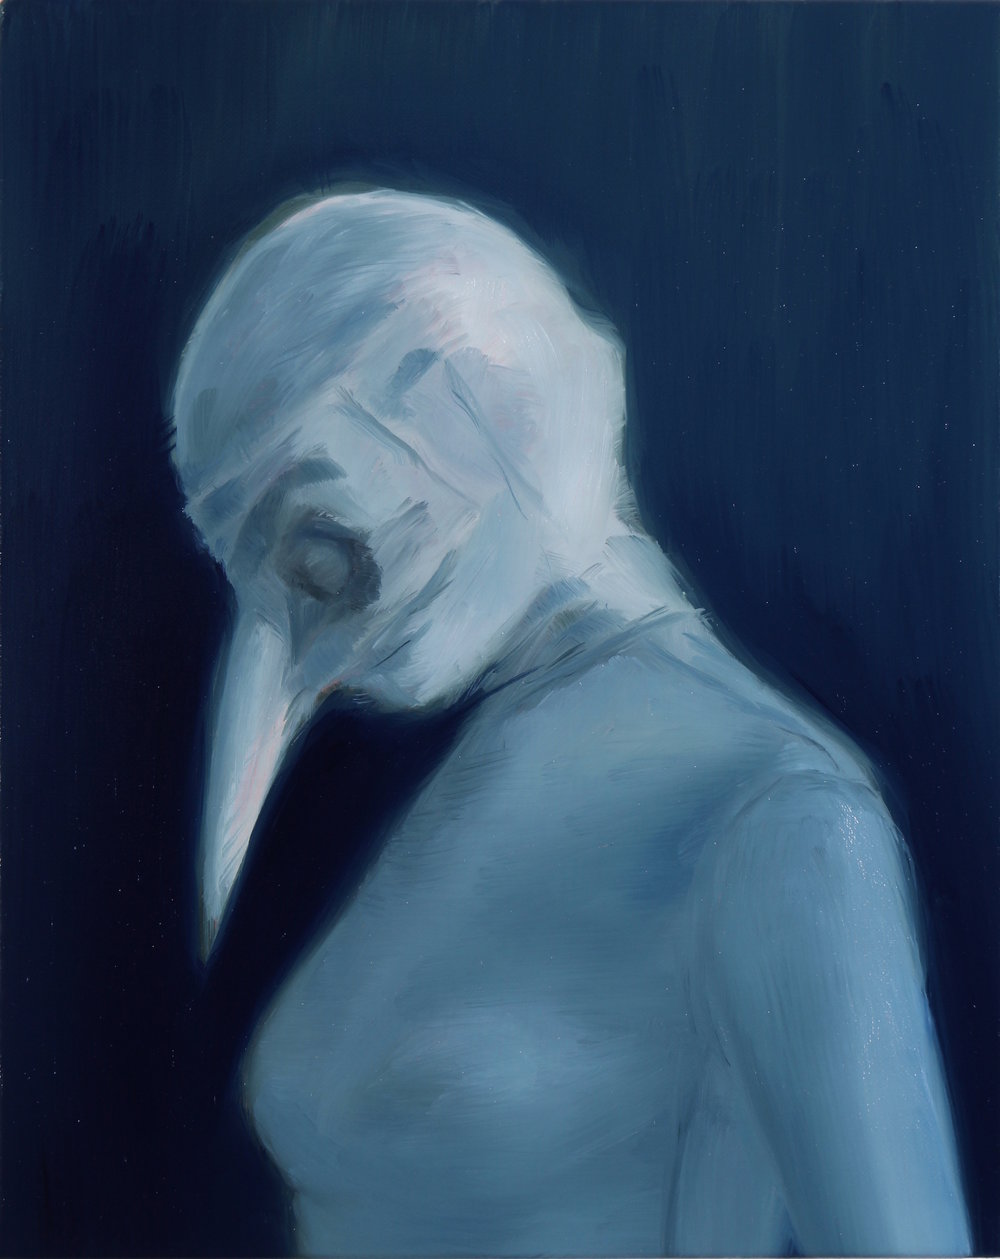 The Beak, Oil on linen, 30x24cm, 2016